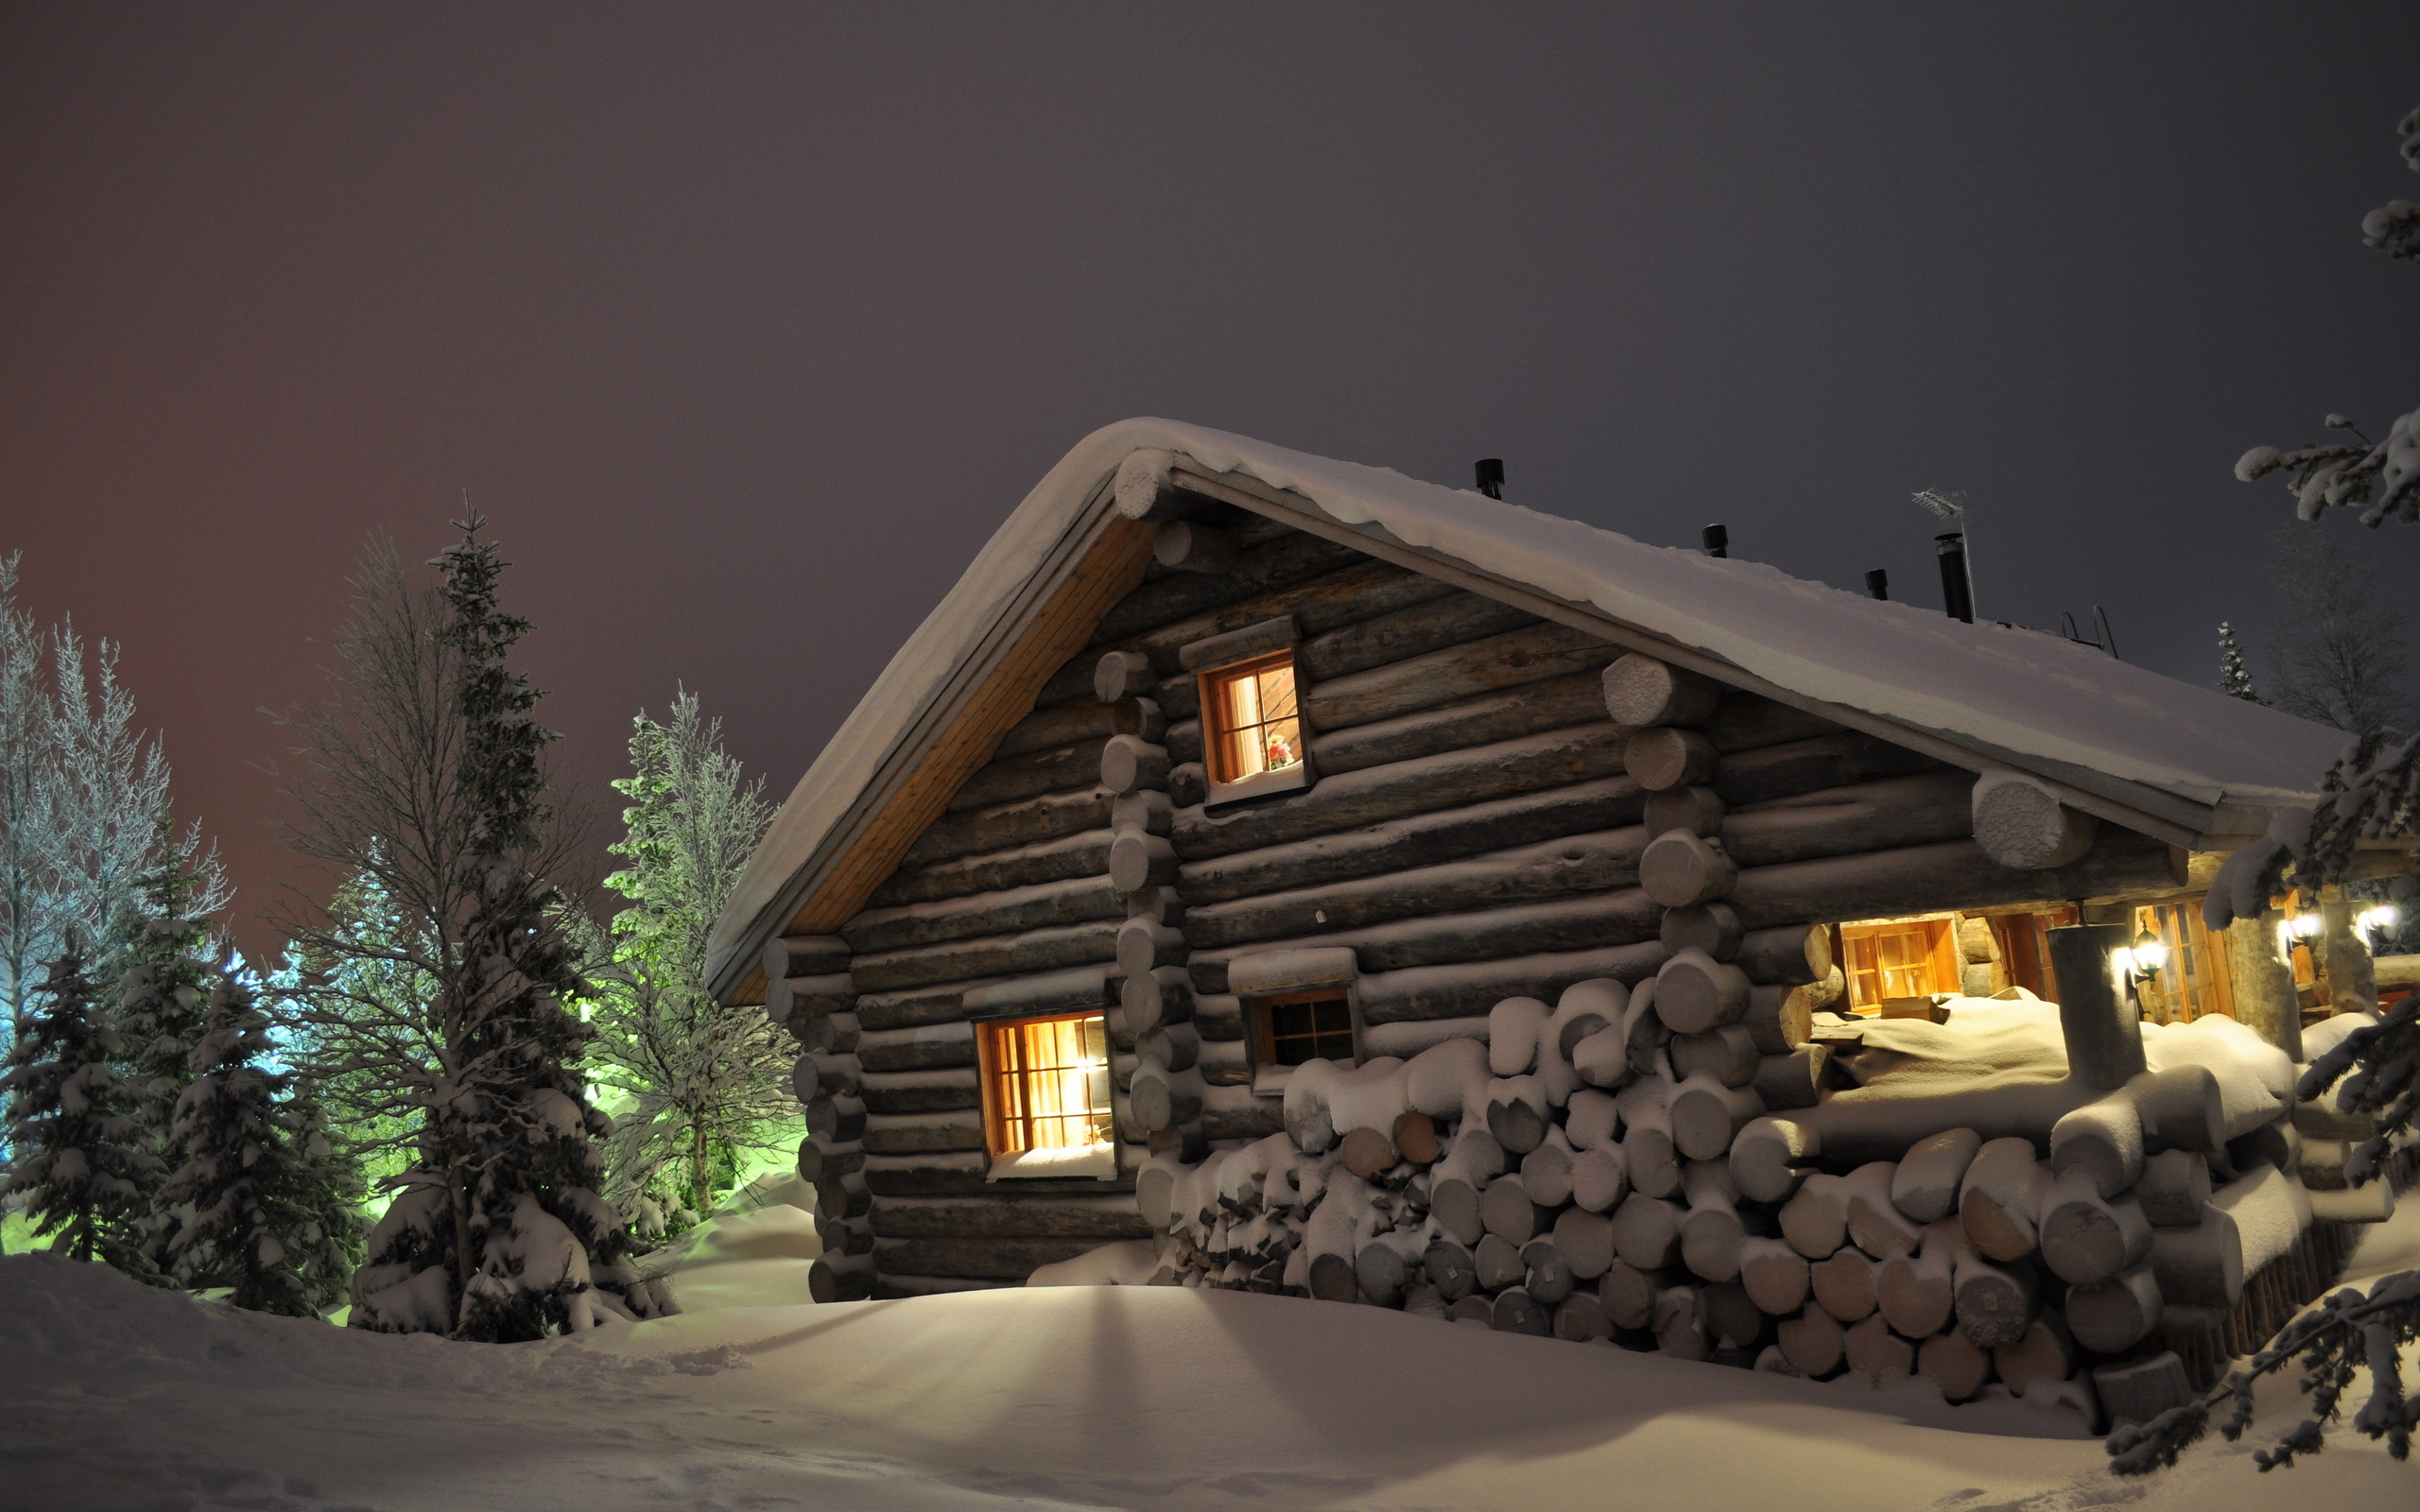 Download Wallpaper winter snow drifts log cabin wood night eating 2560x1600